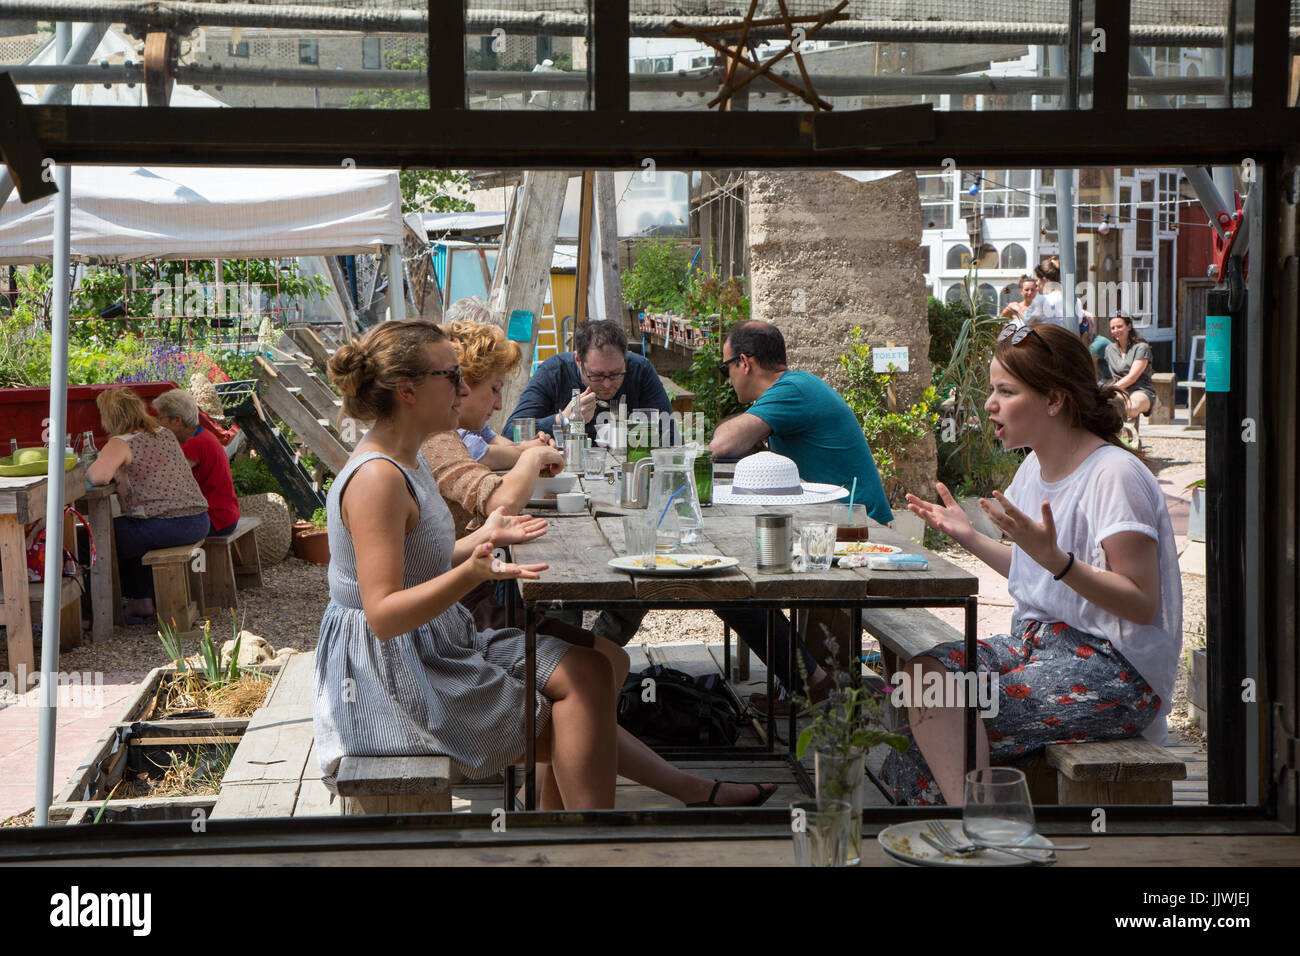 Lunch at Skip Garden and Kitchen, London King's Cross - Stock Image